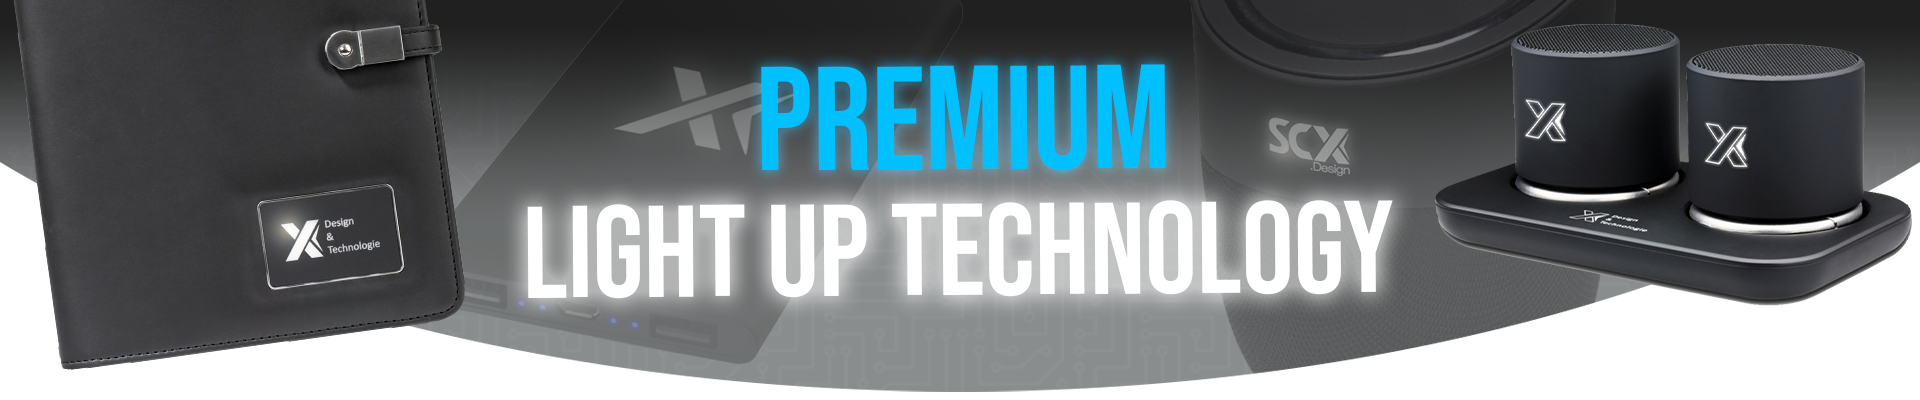 Premium-light-up-tech-Webpage-Banner.png